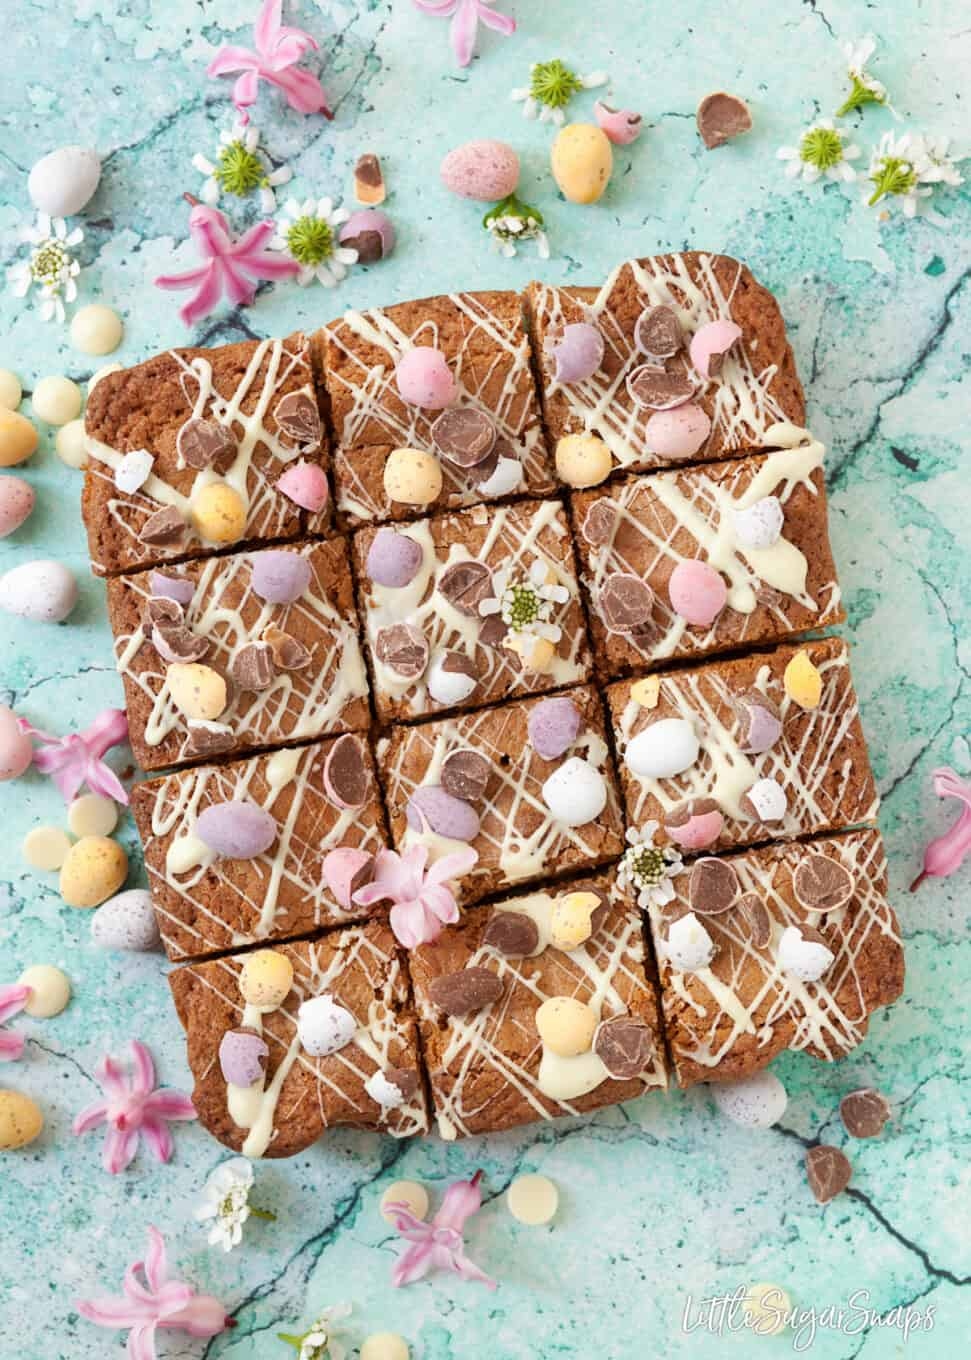 12 squares of freshly cut brown butter blondies with coconut with mini eggs on a blue board. Spring flowers around the image and spare mini eggs